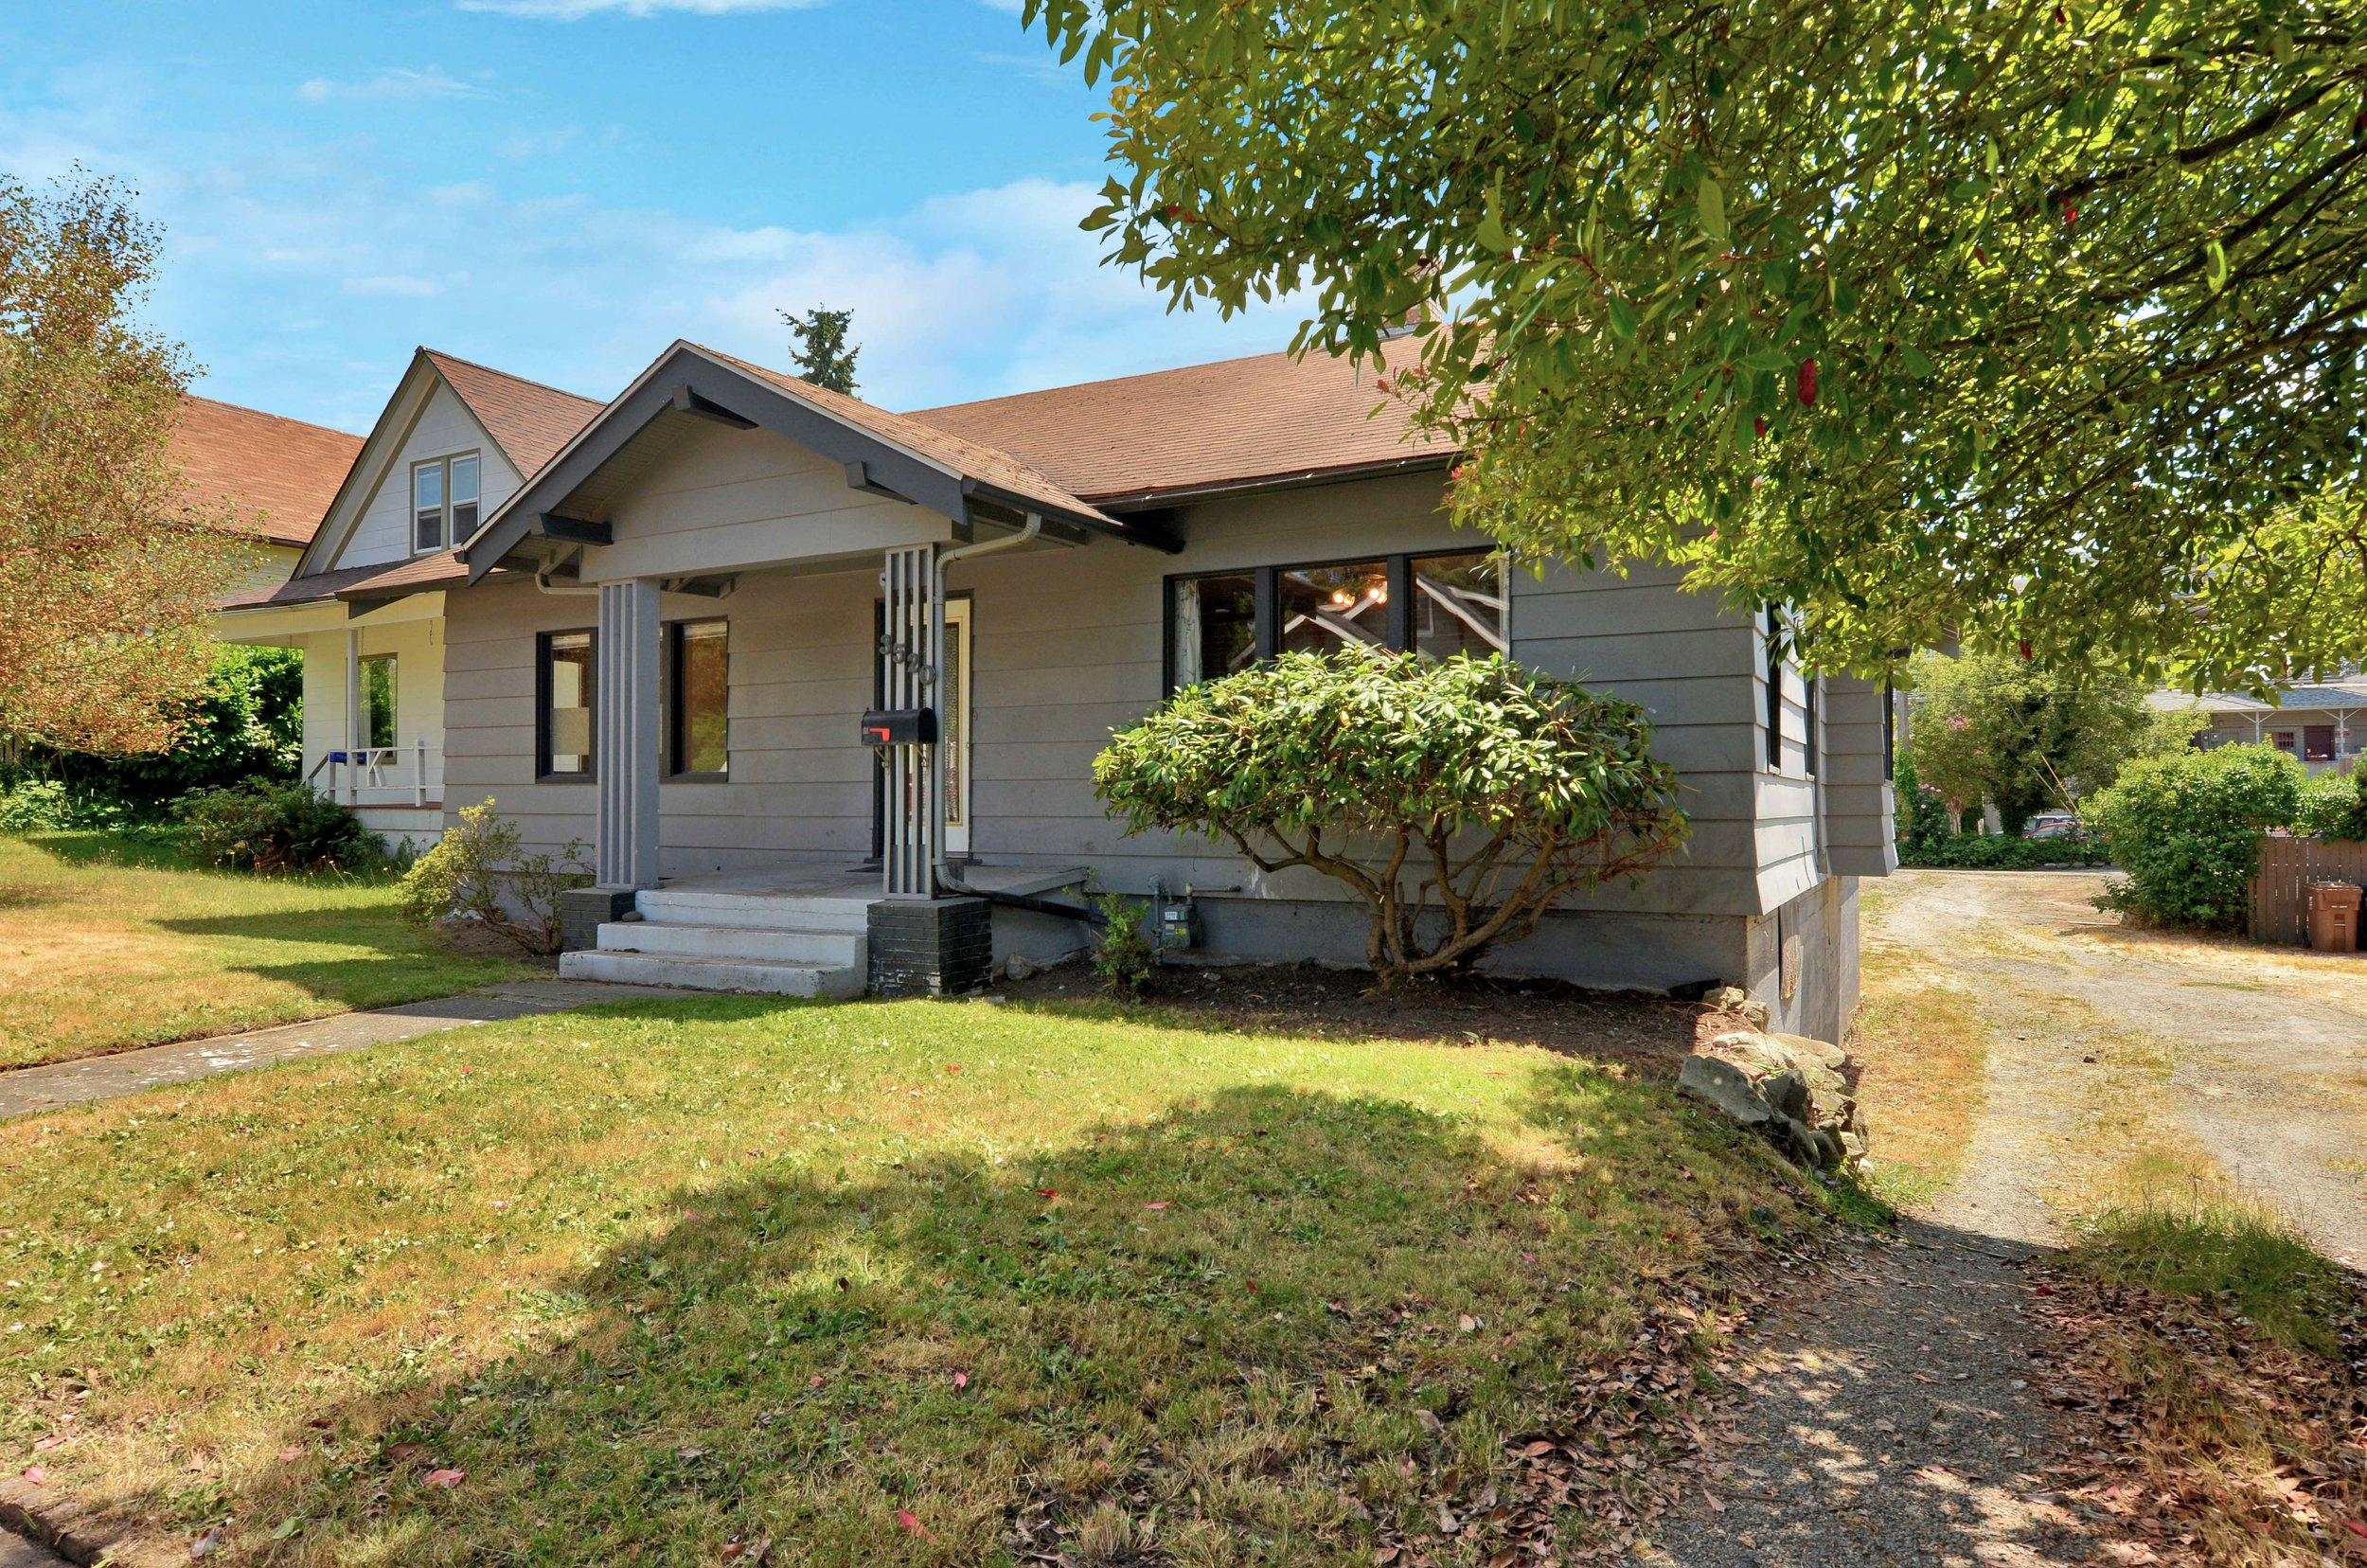 This 6-bedroom Craftsman home faces north onto N. 7th St and is just a 6 minute walk from the University of Puget Sound campus.